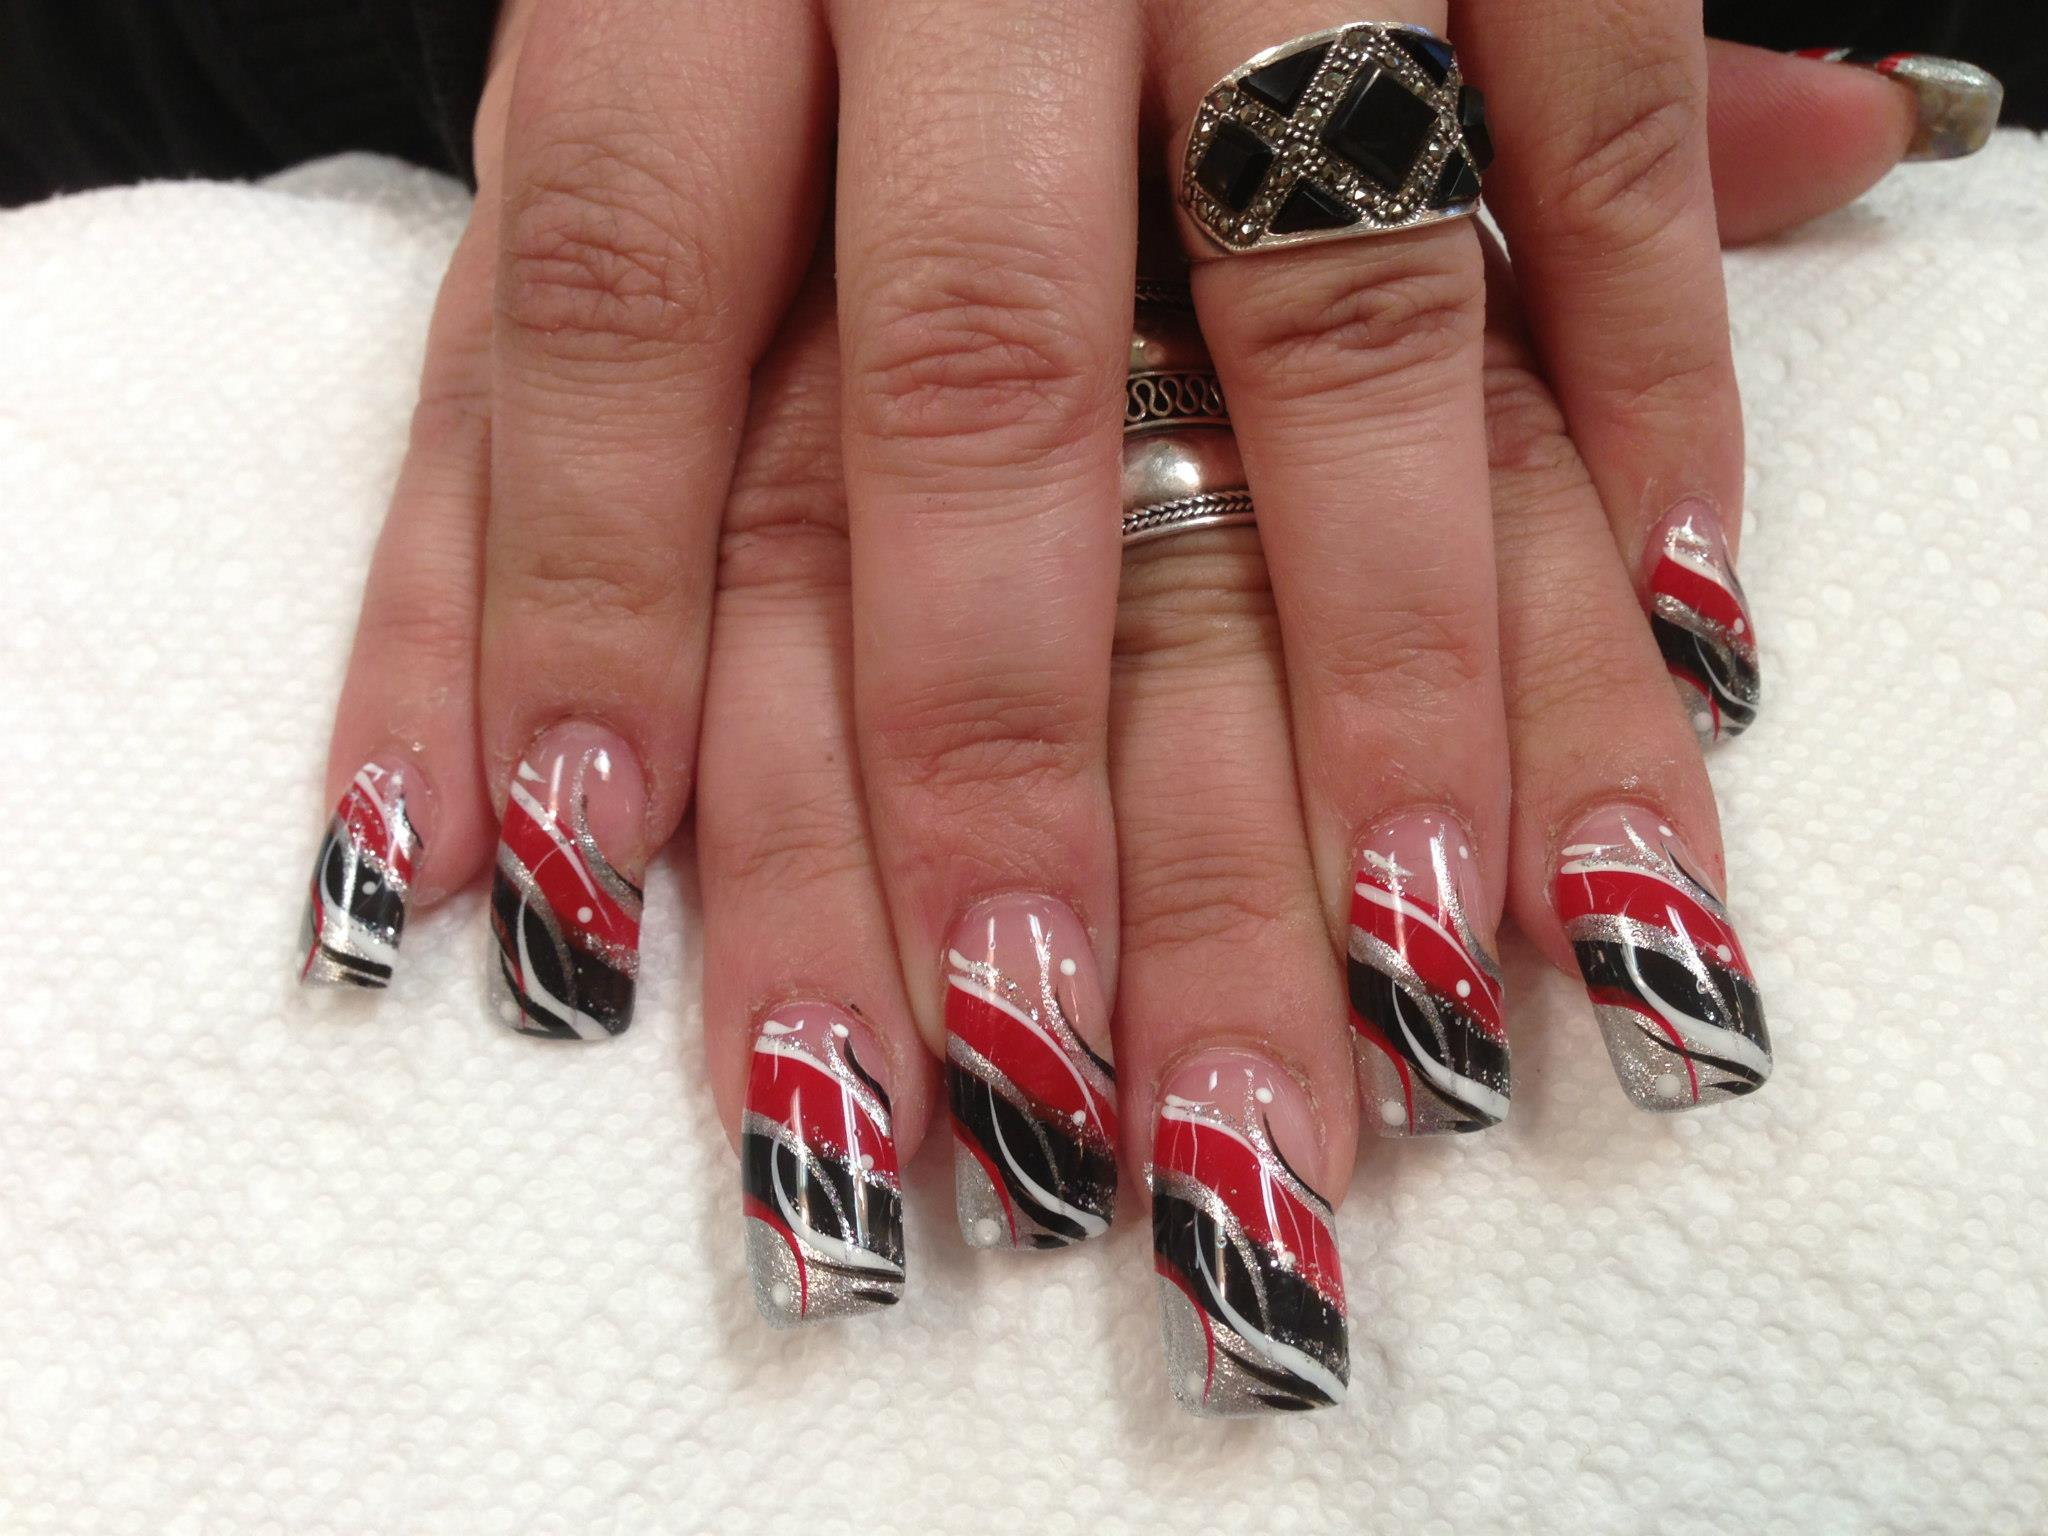 Gothic Swirl, nail art designs by Top Nails, Clarksville TN. | Top Nails